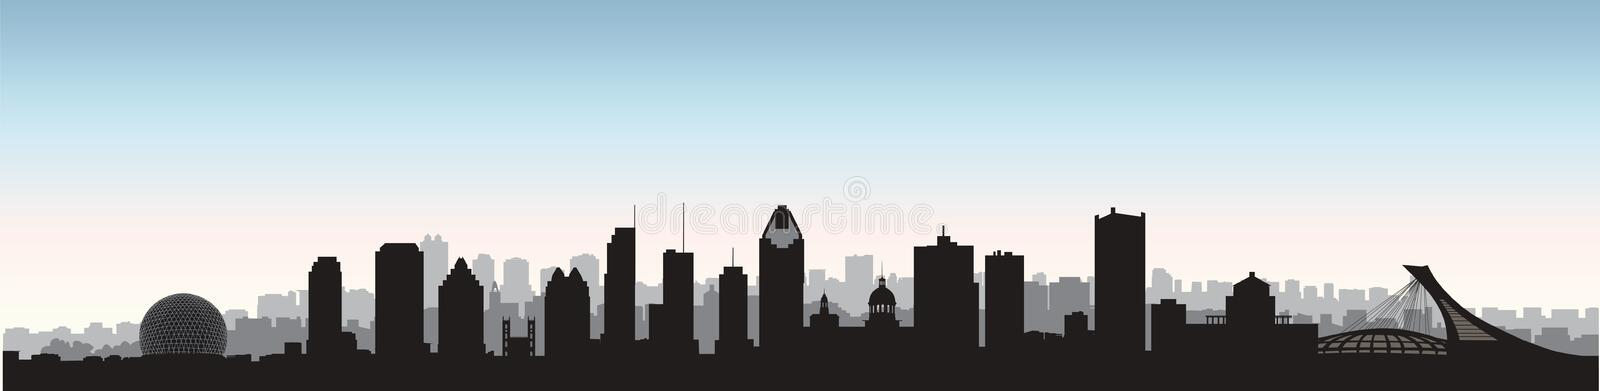 Montreal city, Canada skyline. Cityscape panoramic silhouette with famous buildings. Canadian landmarks. Urban architectural landscape vector illustration